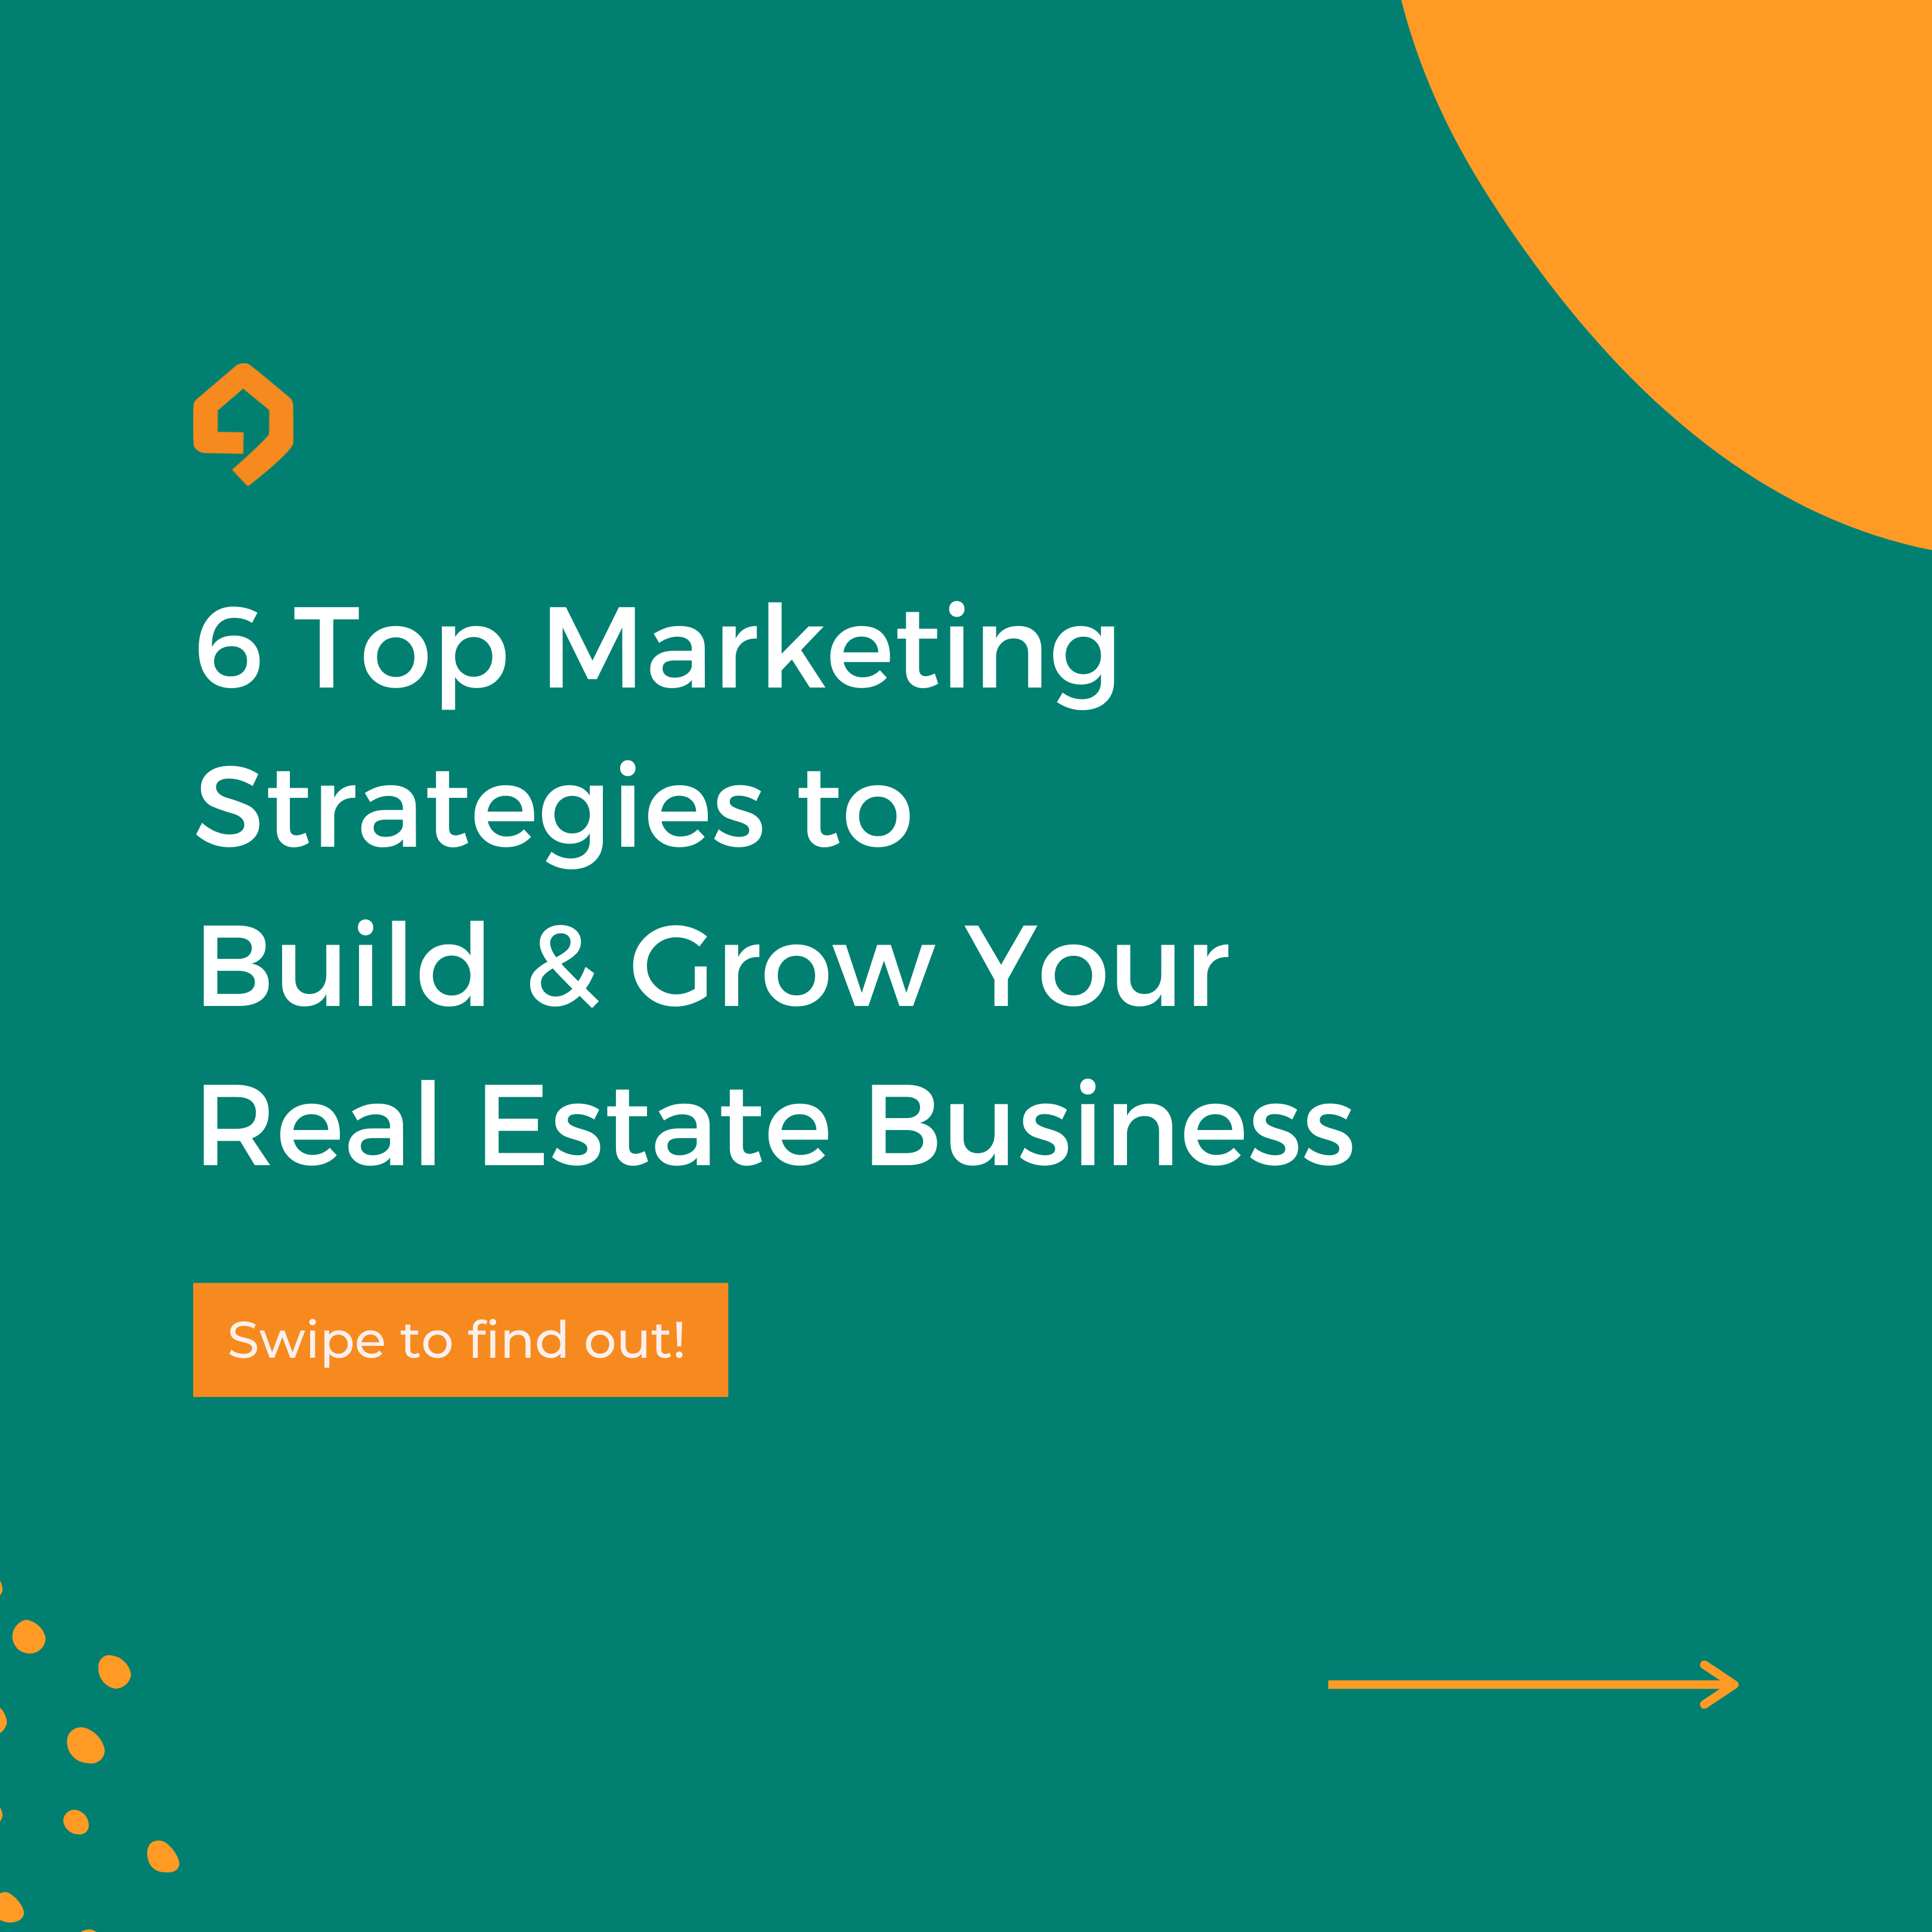 6 Top Marketing Strategies to Build & Grow Your Real Estate Business